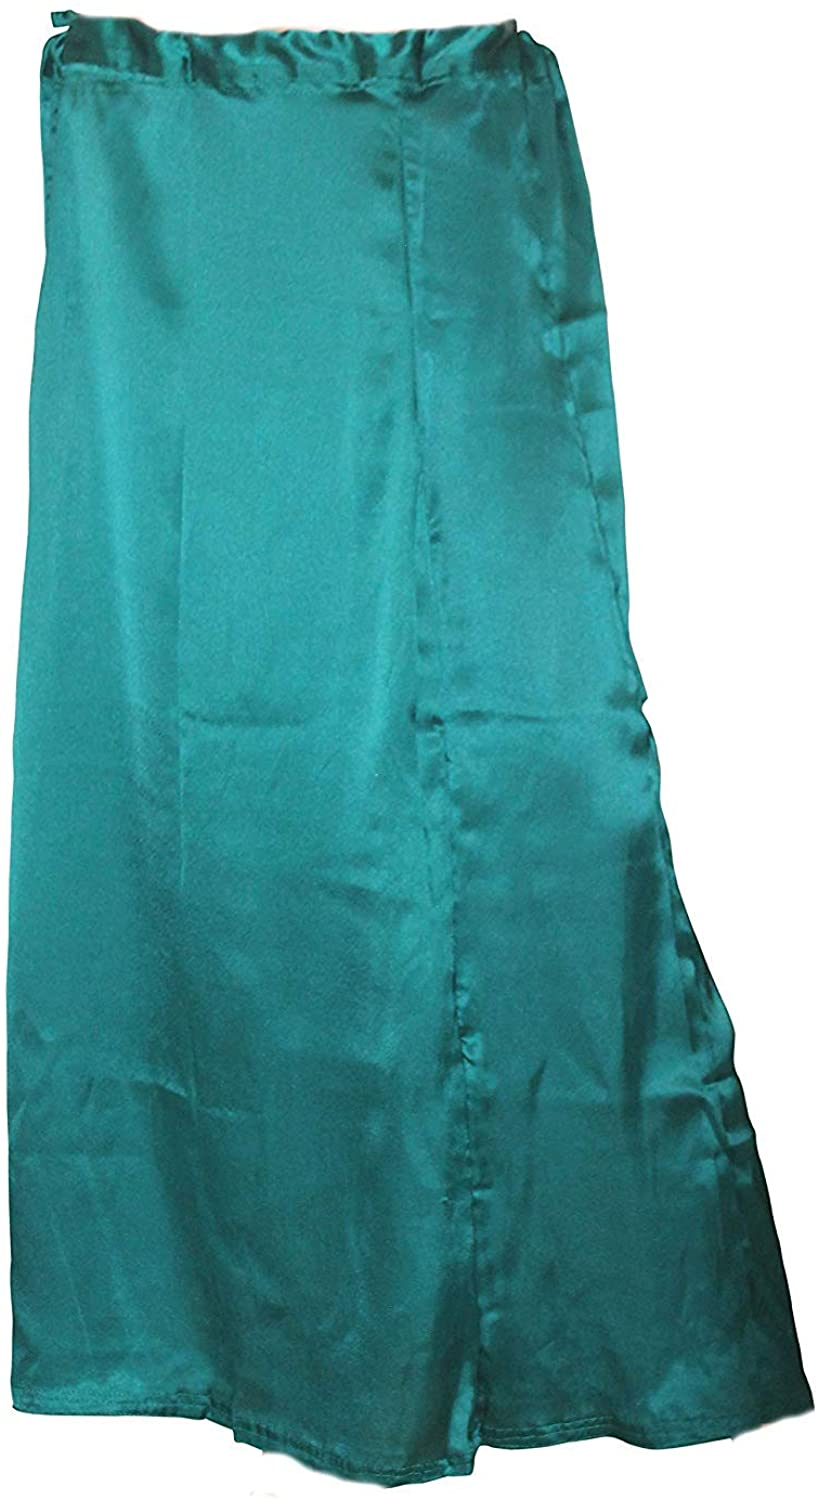 Women's Satin Silk Readymade Teal Indian in Skirt Saree Petticoats Underskirt - Free Size